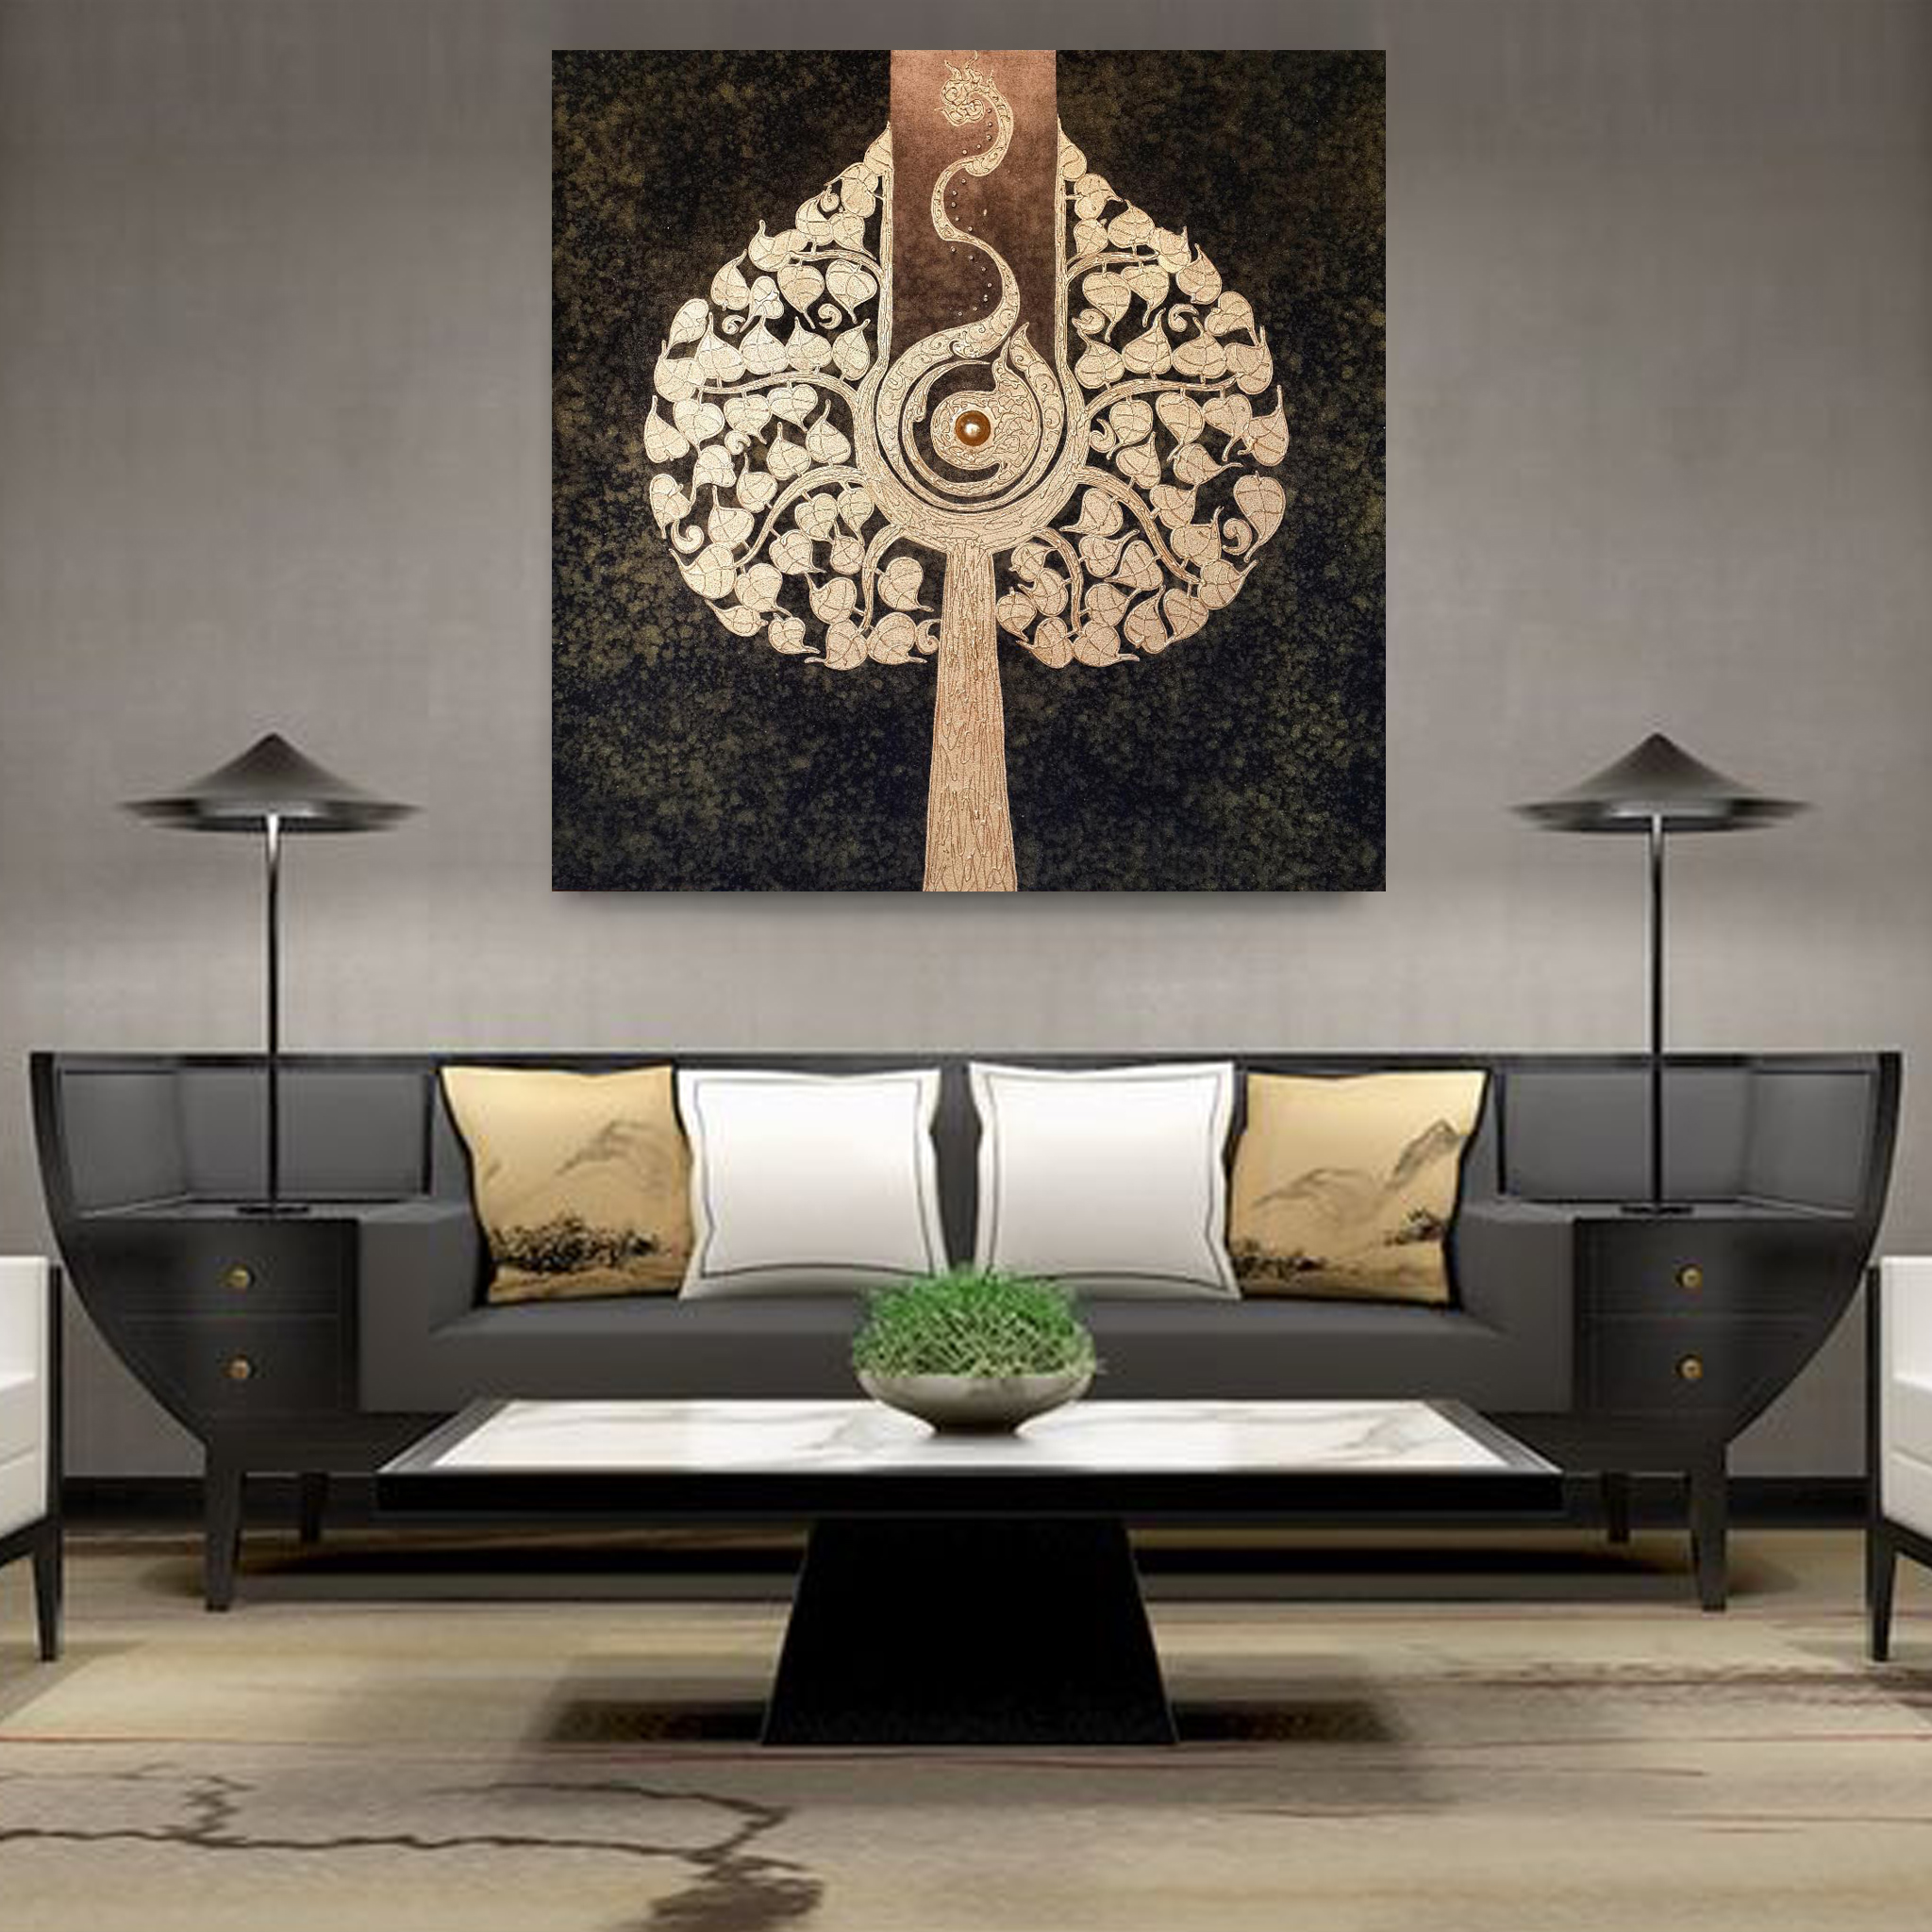 Thai artwork handmade gold leaf bodhi tree painting for Thailand home decor